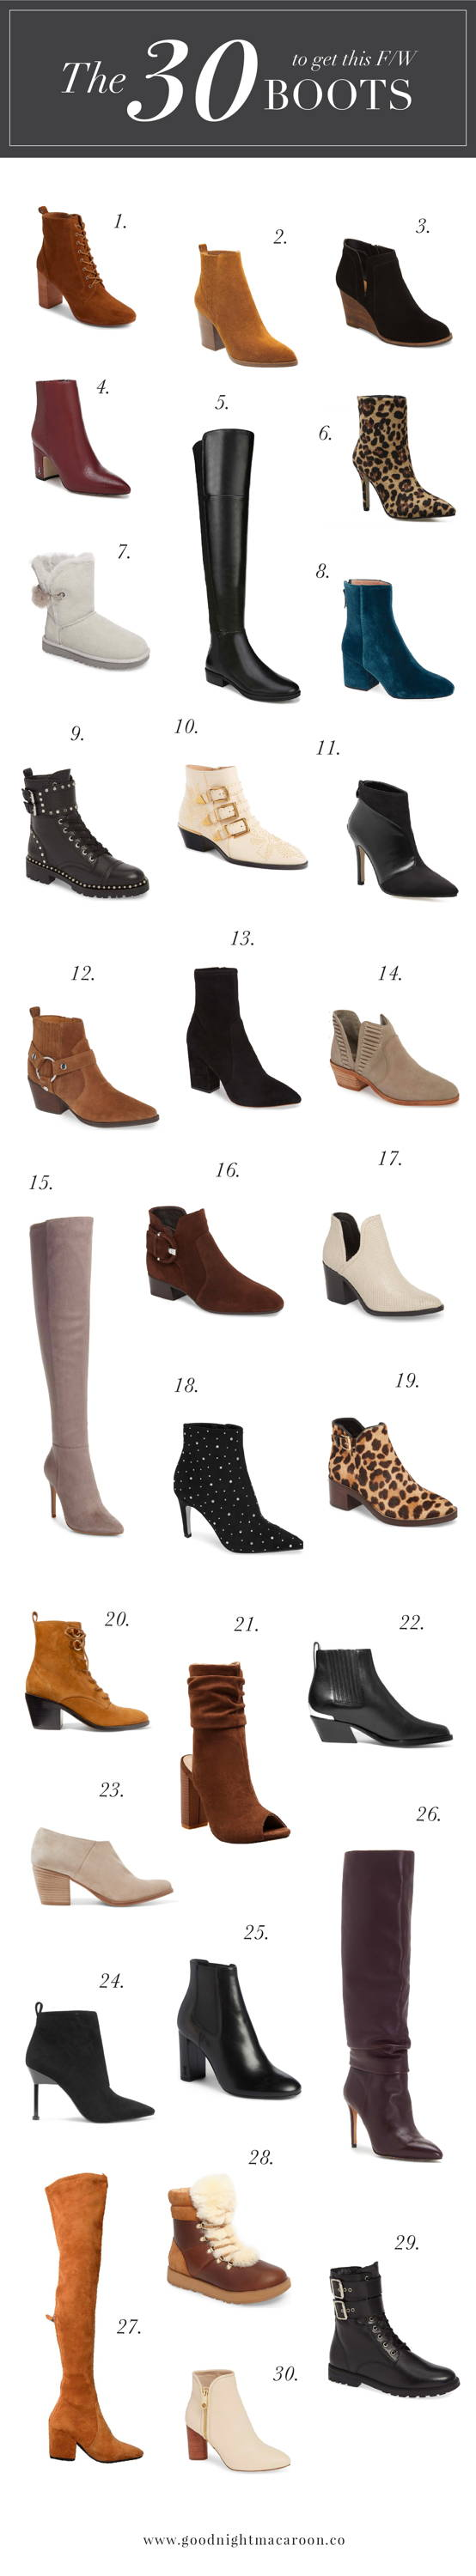 739a9a713ed Marc Fisher LTD Alva Bootie    3. Lucky Brand Yabba Wedge Bootie    4. Sam  Edelman Hilty Bootie    5. Sam Edelman Pam Over the Knee Boot    6.